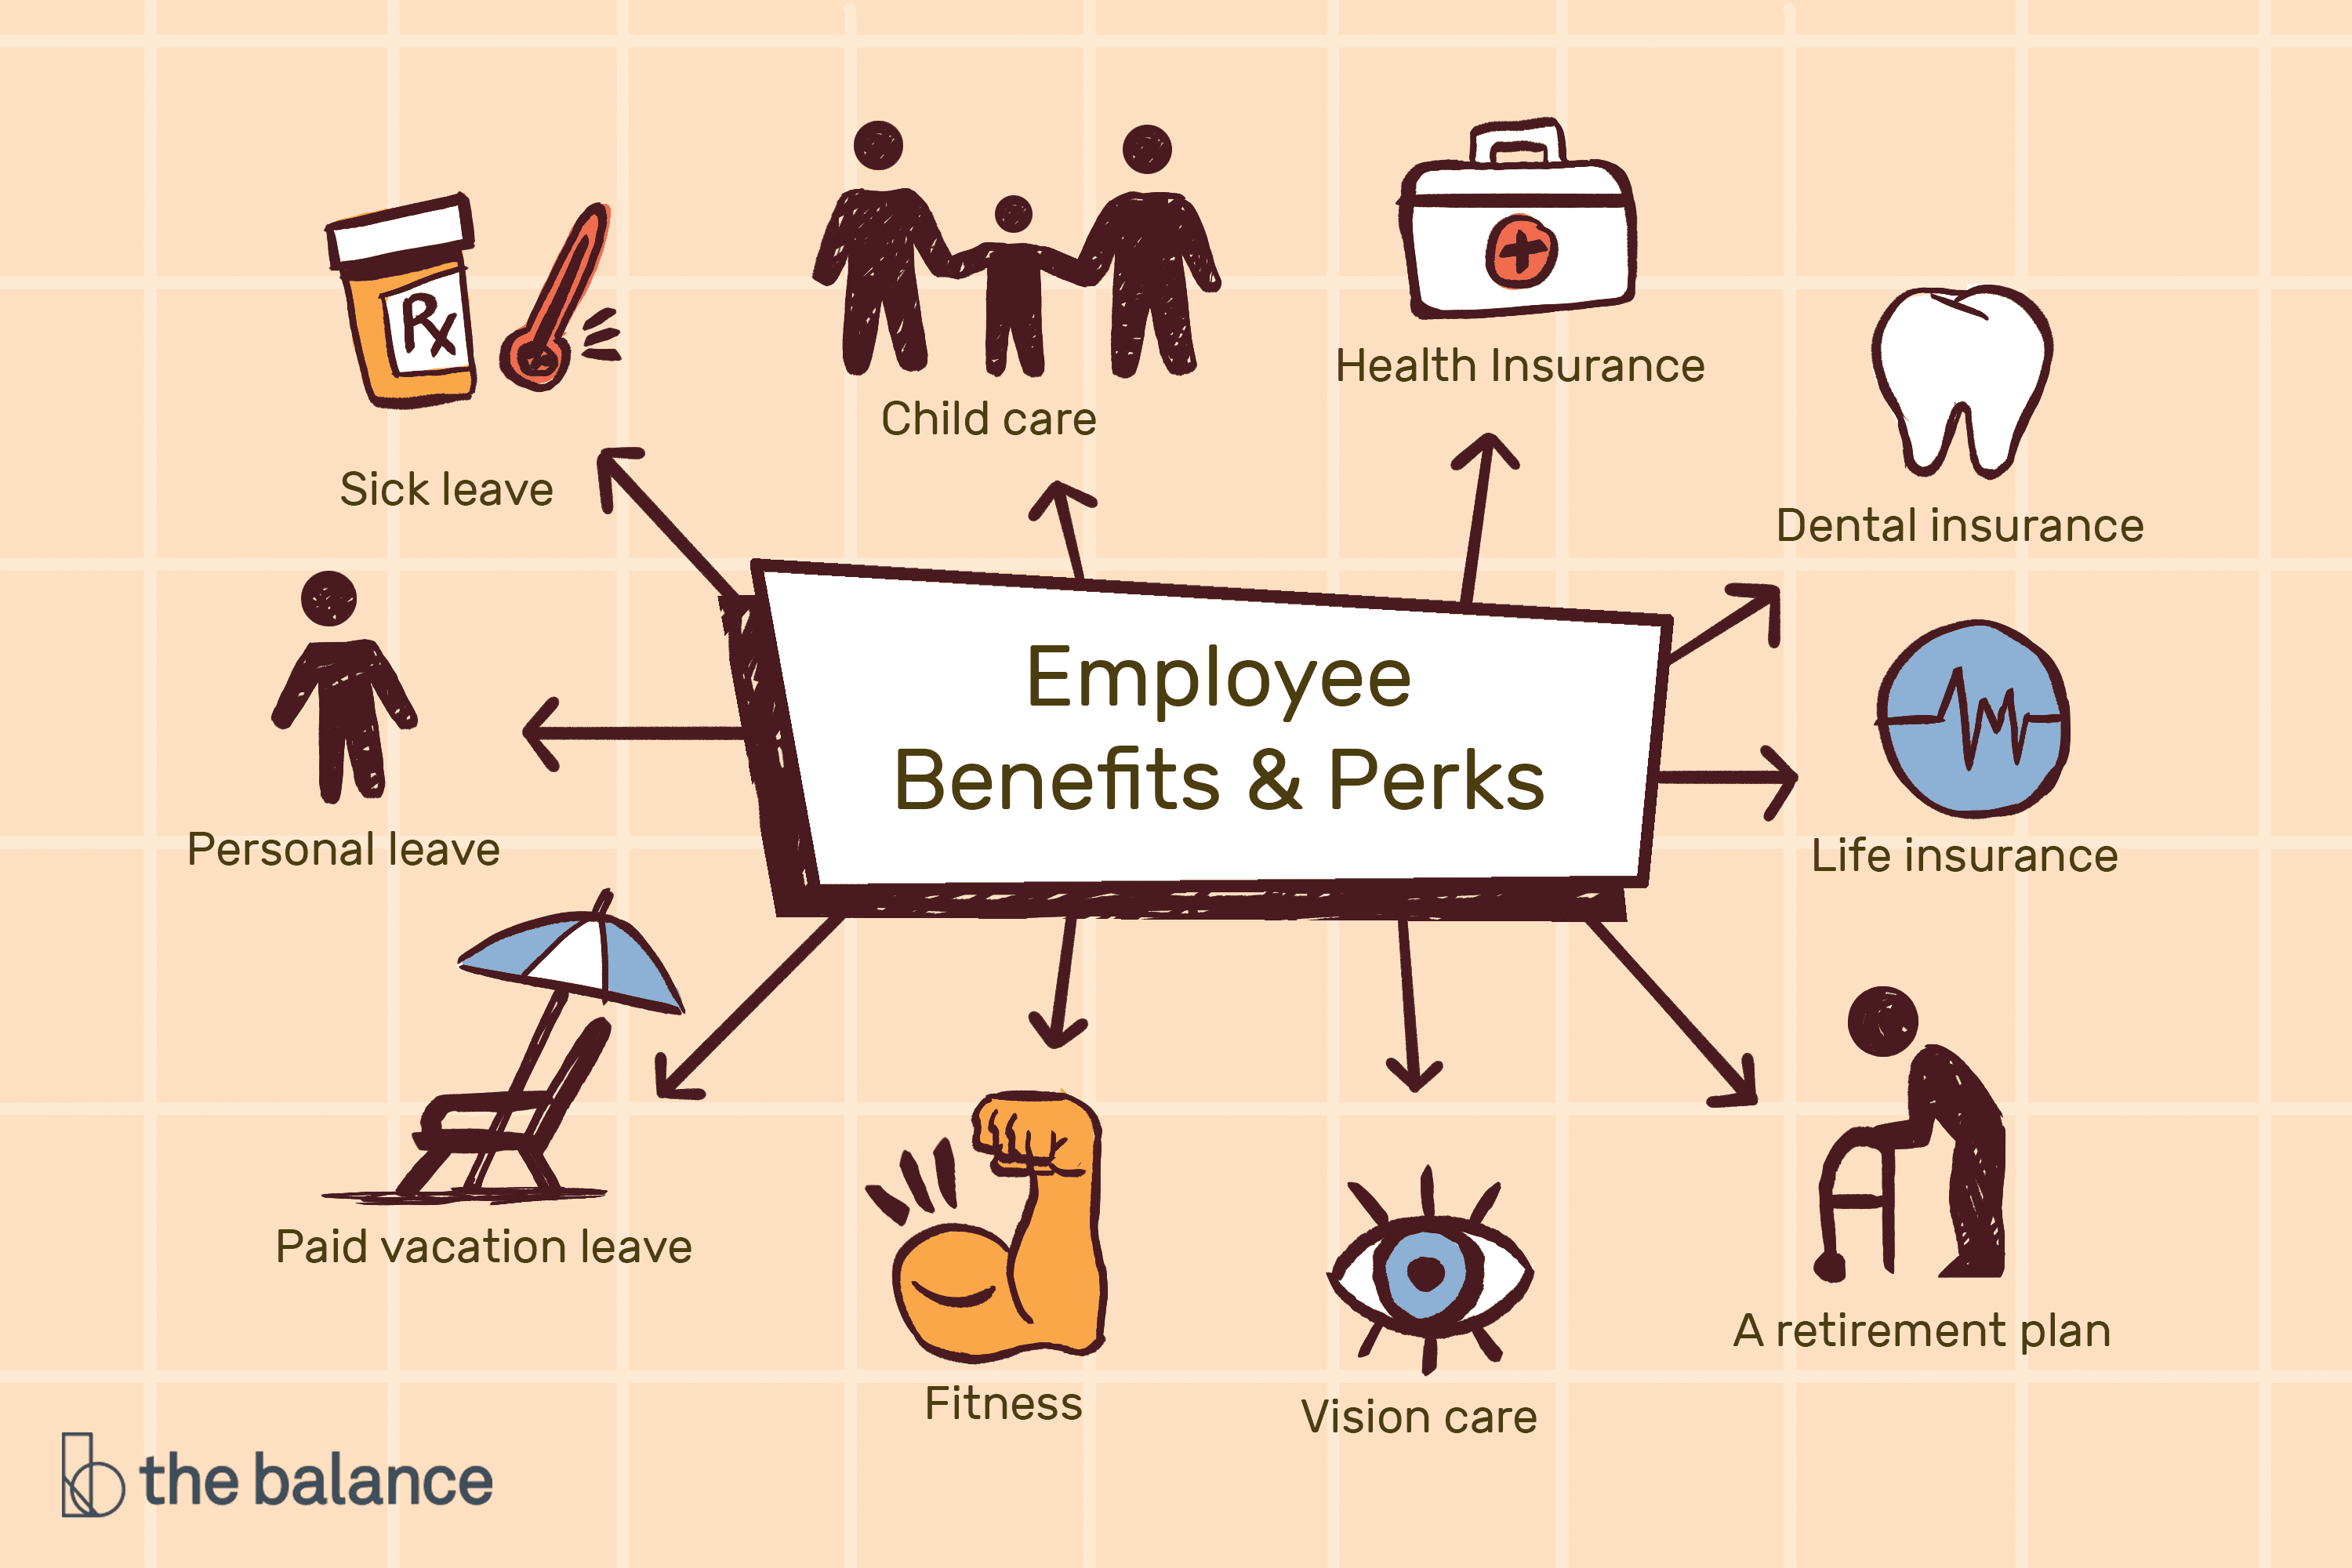 Lnkd In Evurwm9 Employee Benefit Employee Perks Health Insurance Benefits